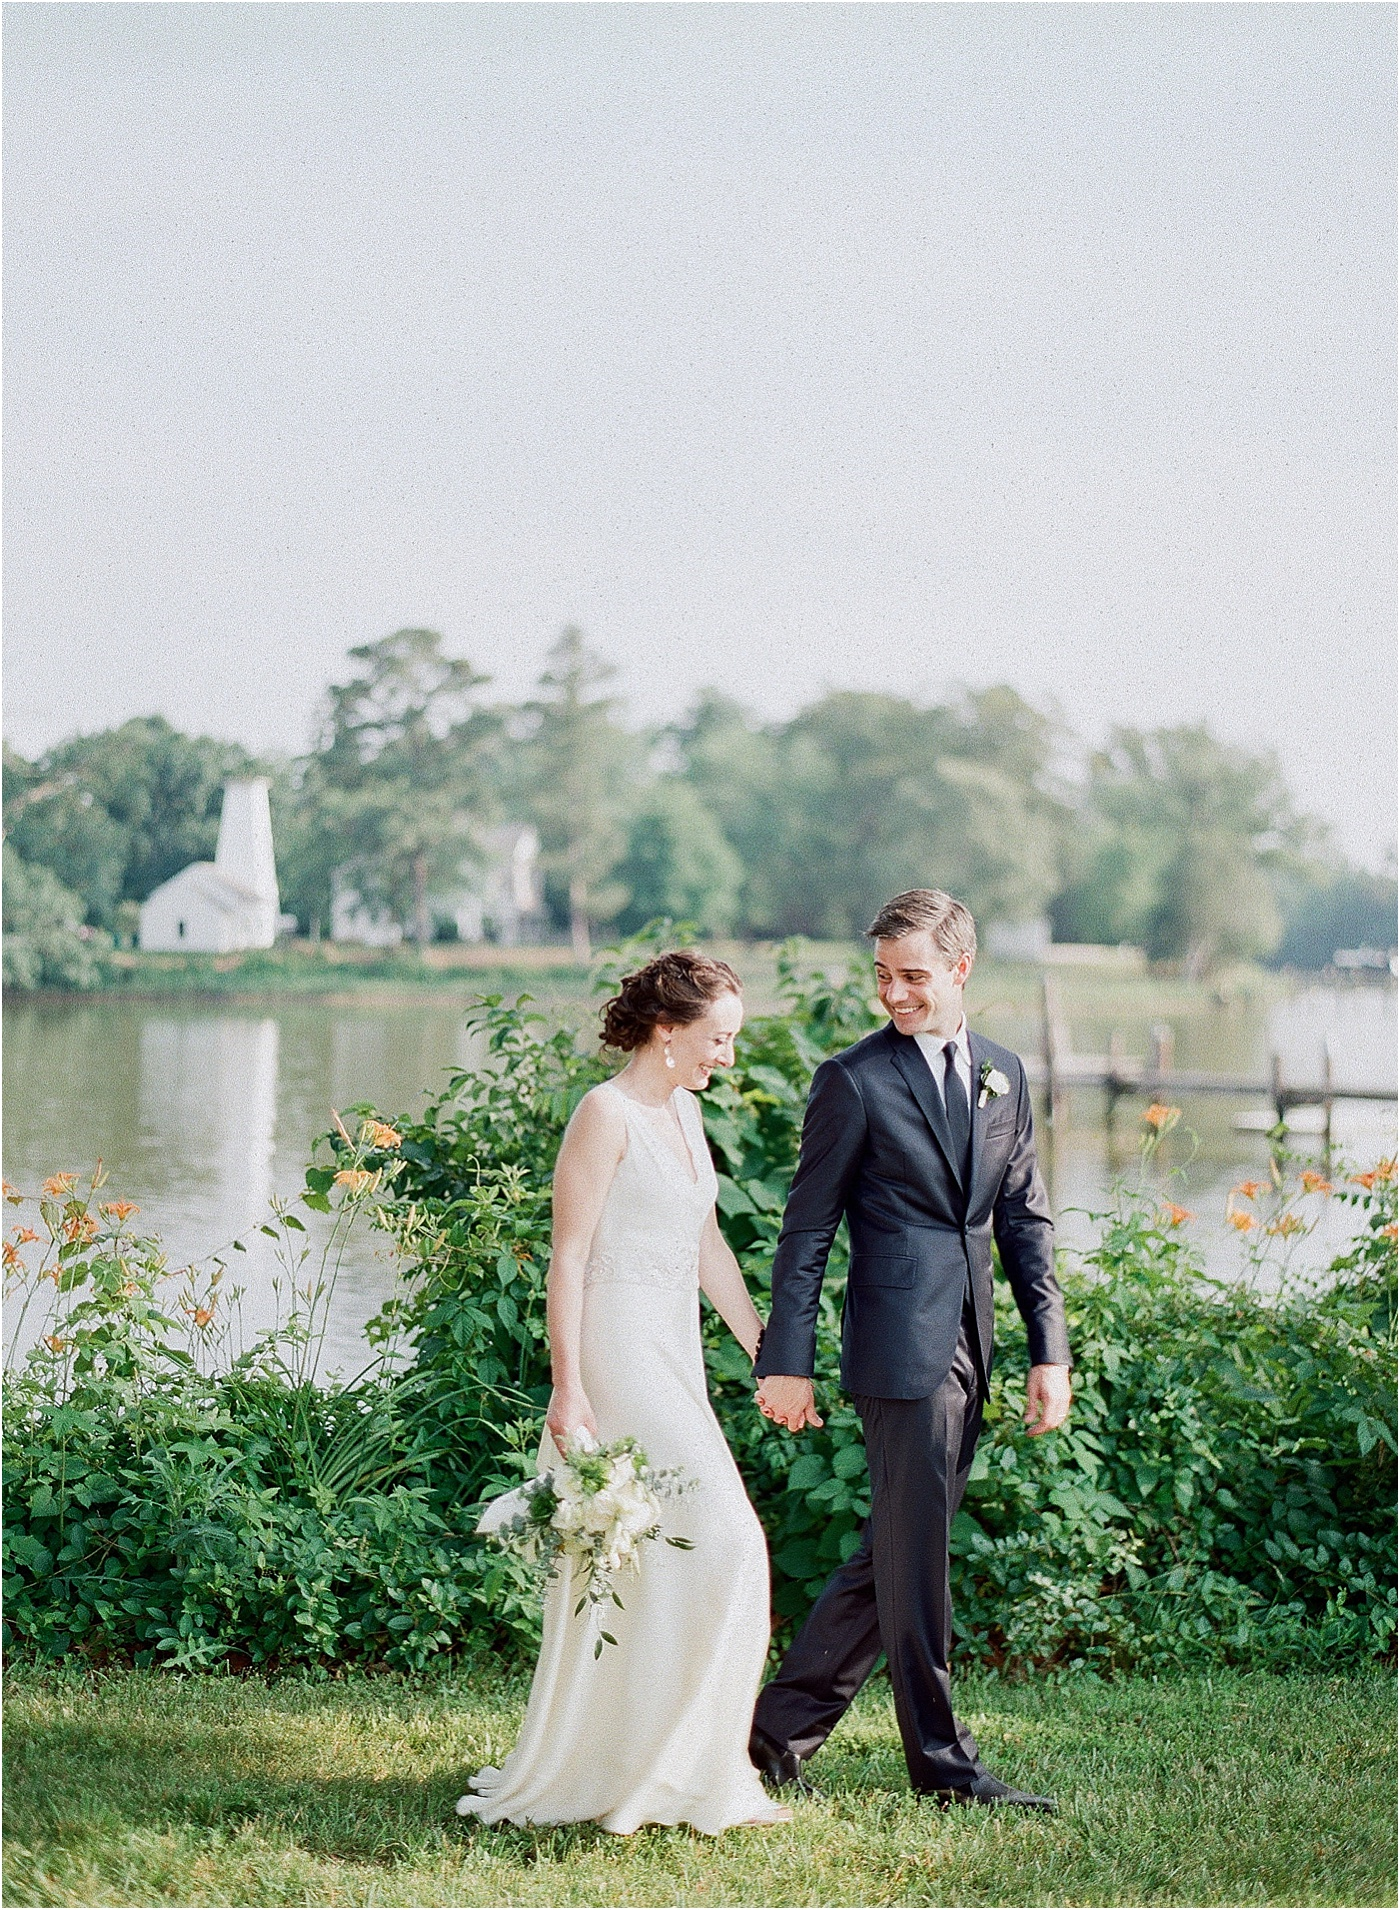 View More: http://gallery.pass.us/colin-and-dana-wedding